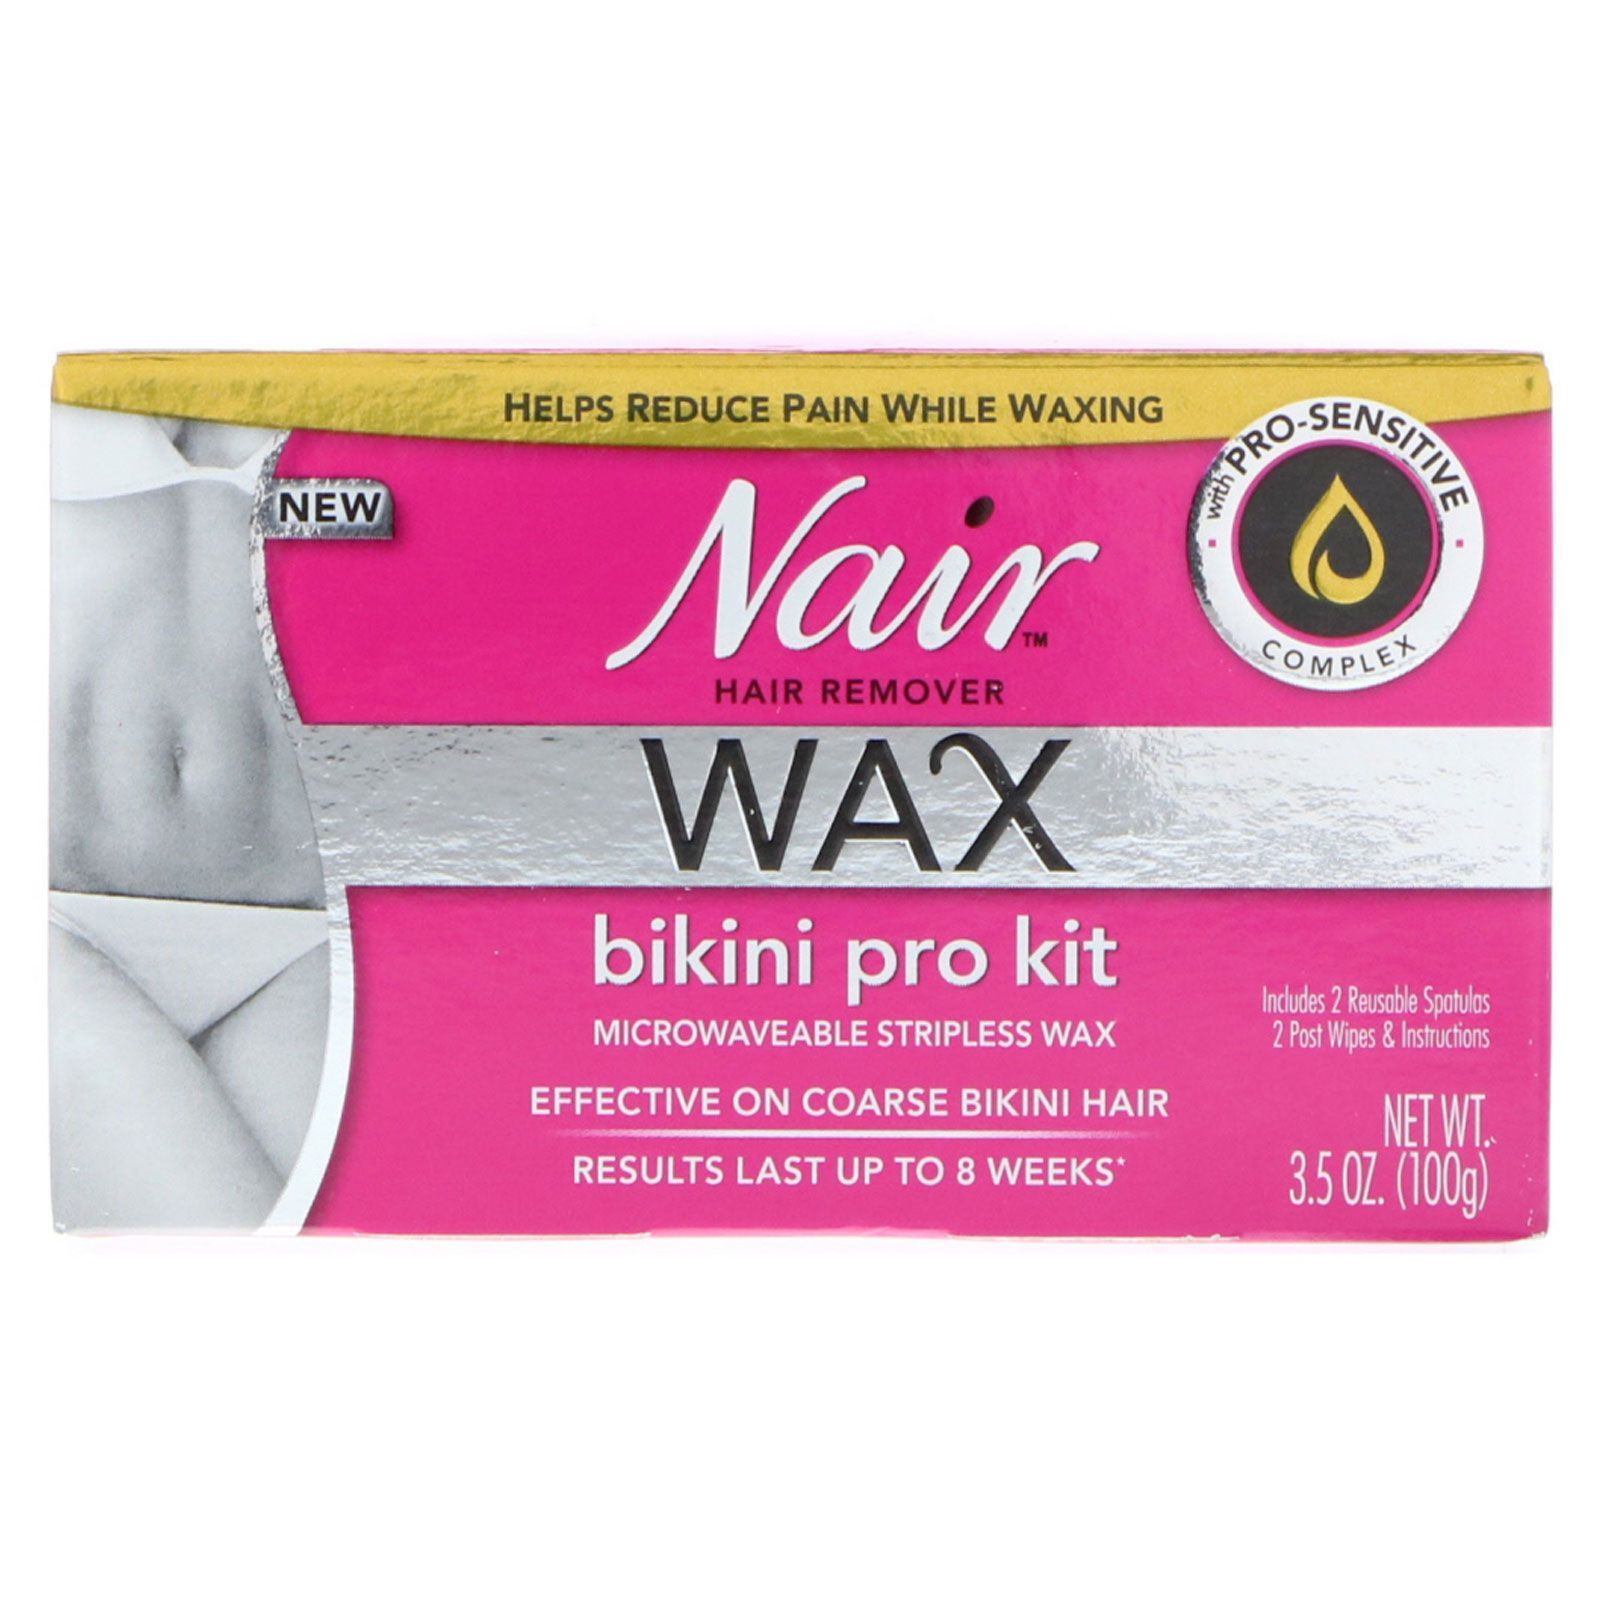 Nair Hair Remover Wax Bikini Stripless Pro Kit 3 5 Oz 100 G